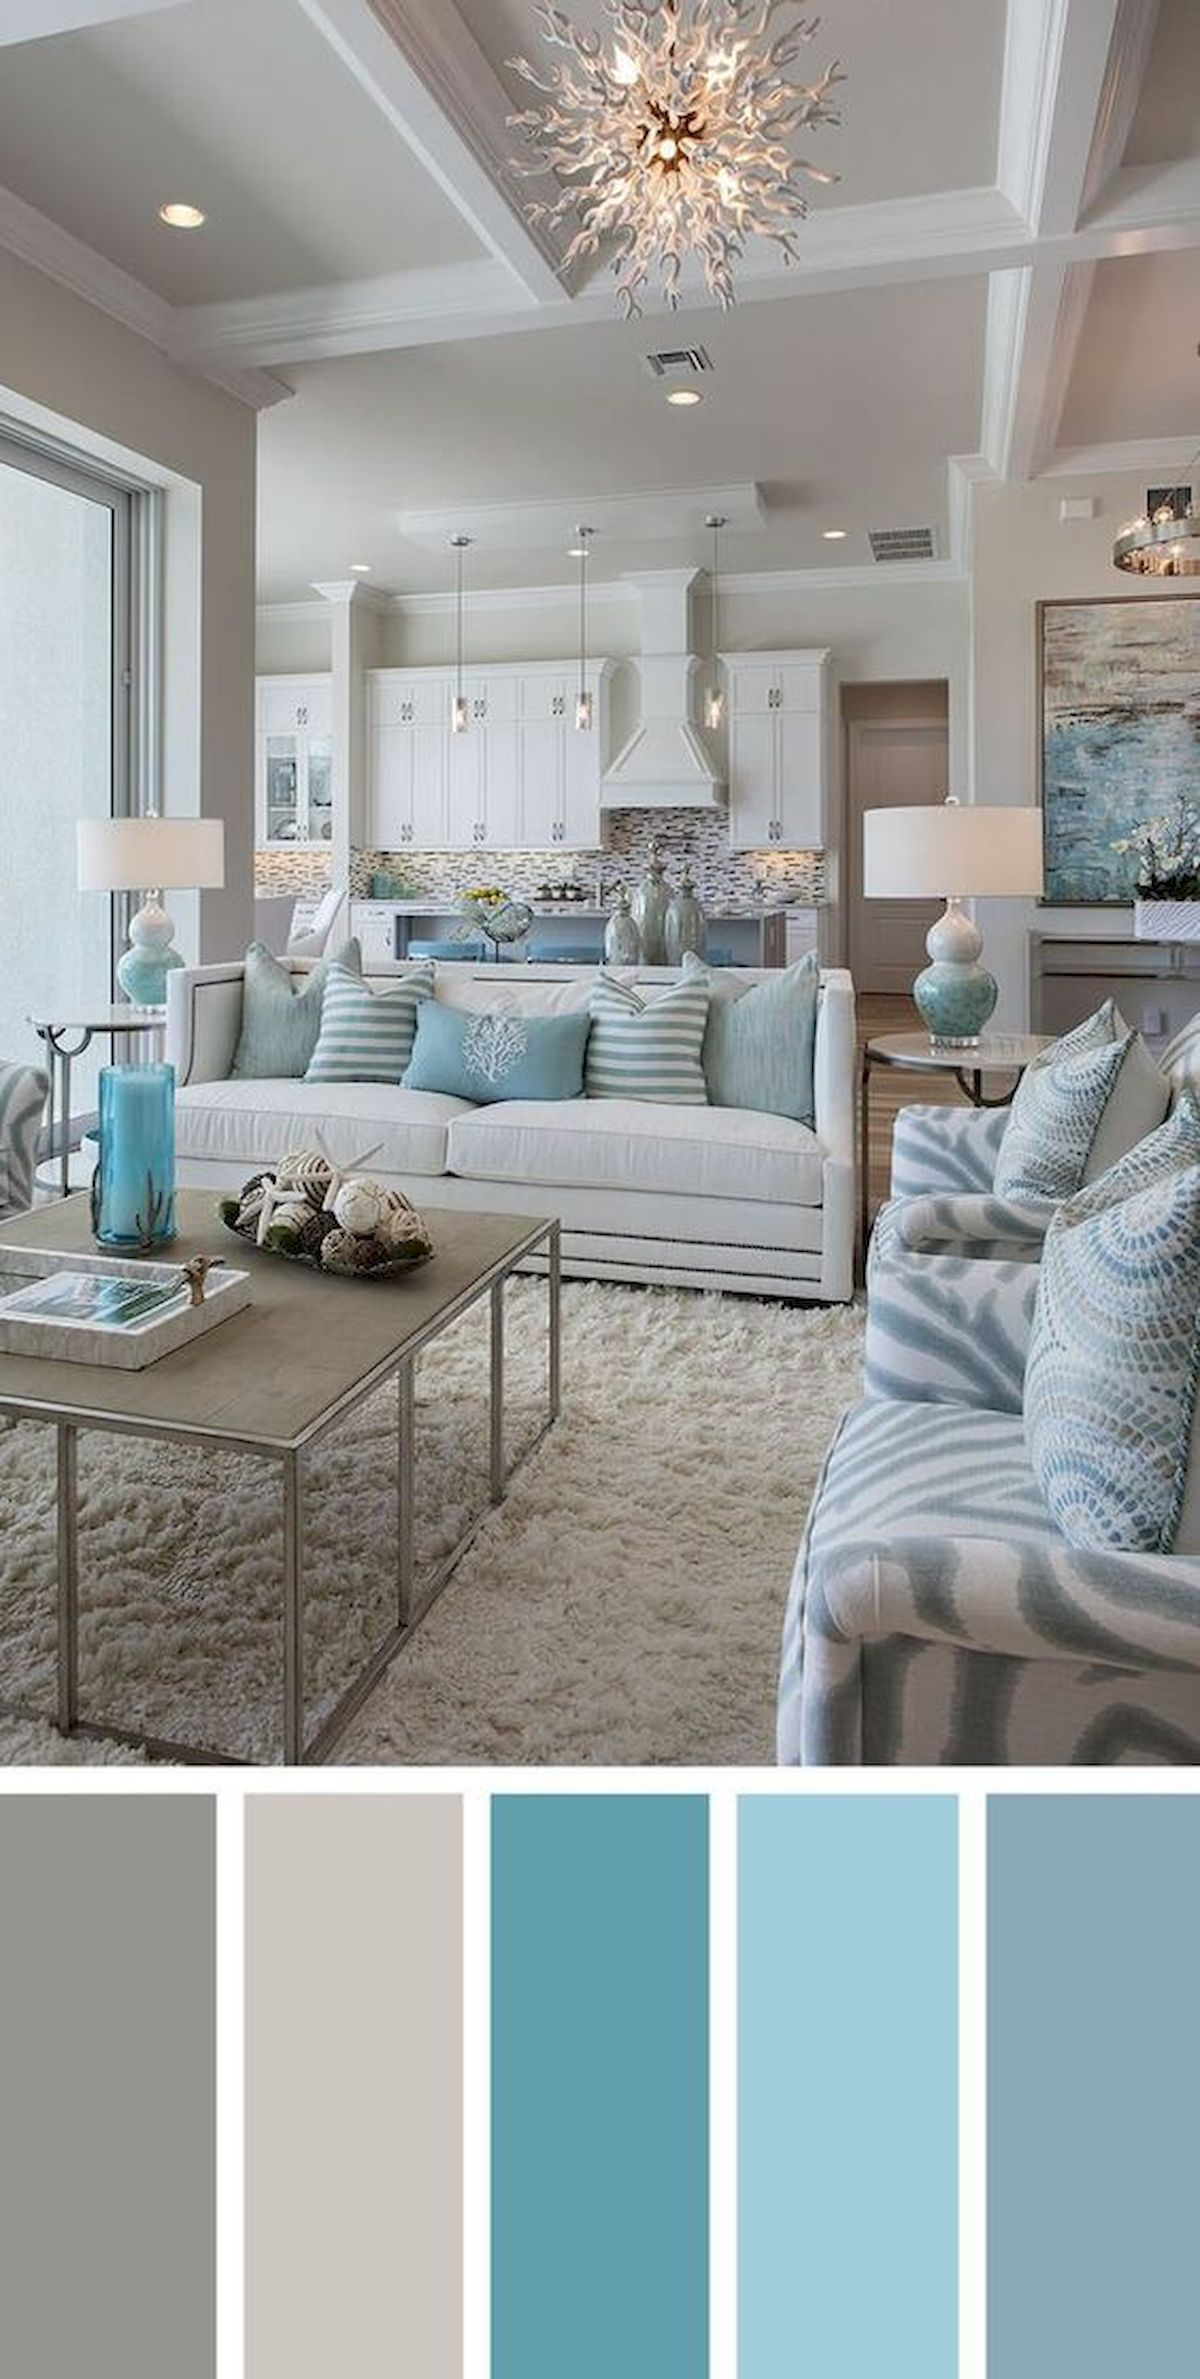 Pin By Kimberly Lyon On Paint Colors In 2021 Family Room Colors Living Room Color Schemes Living Room Color